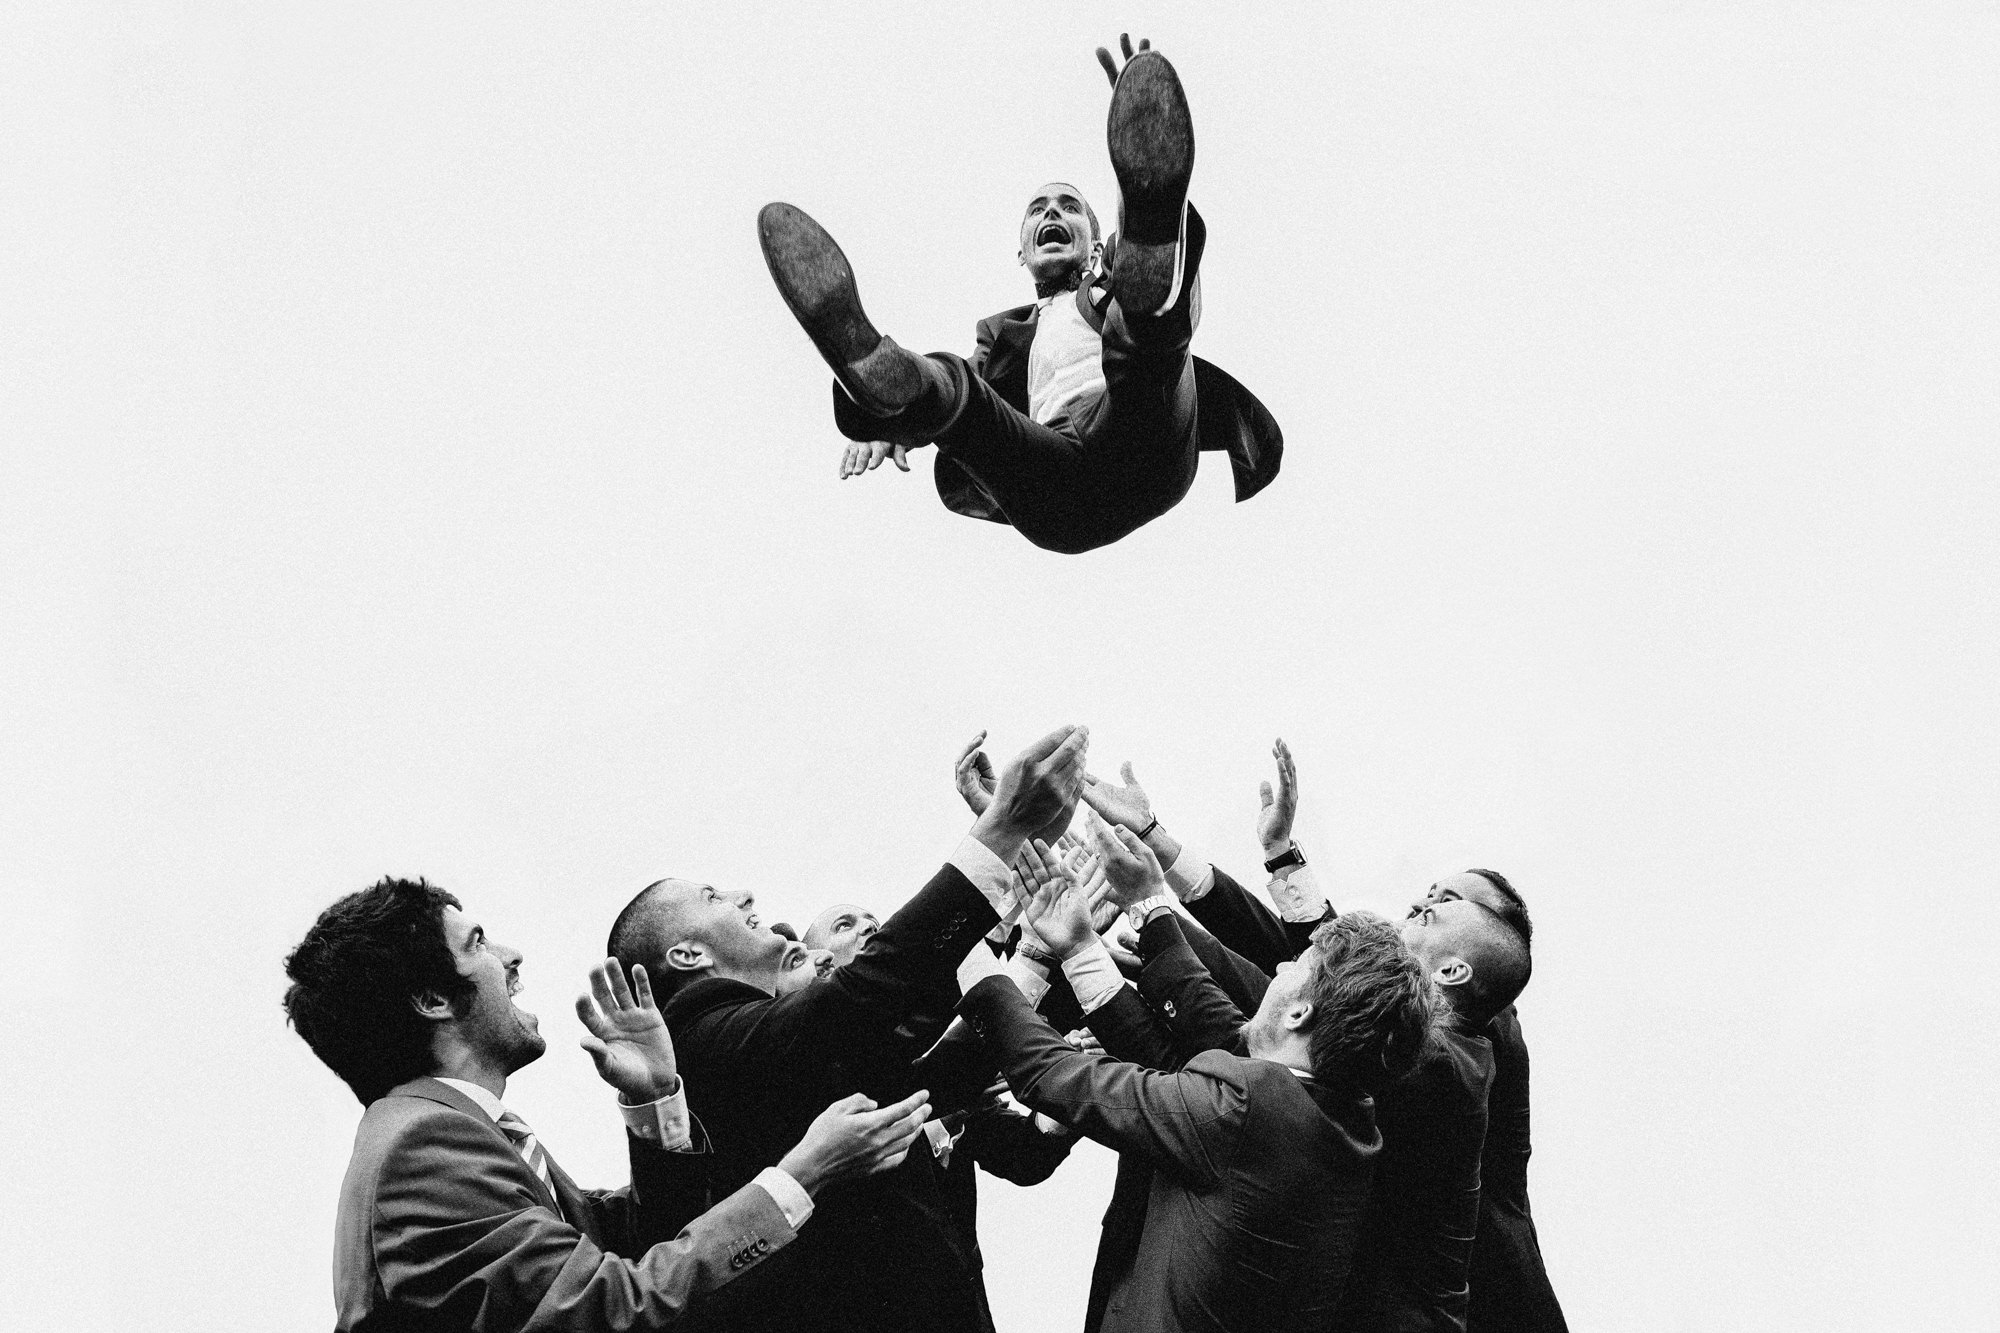 Groom being thrown in the air - photo by Yves Schepers